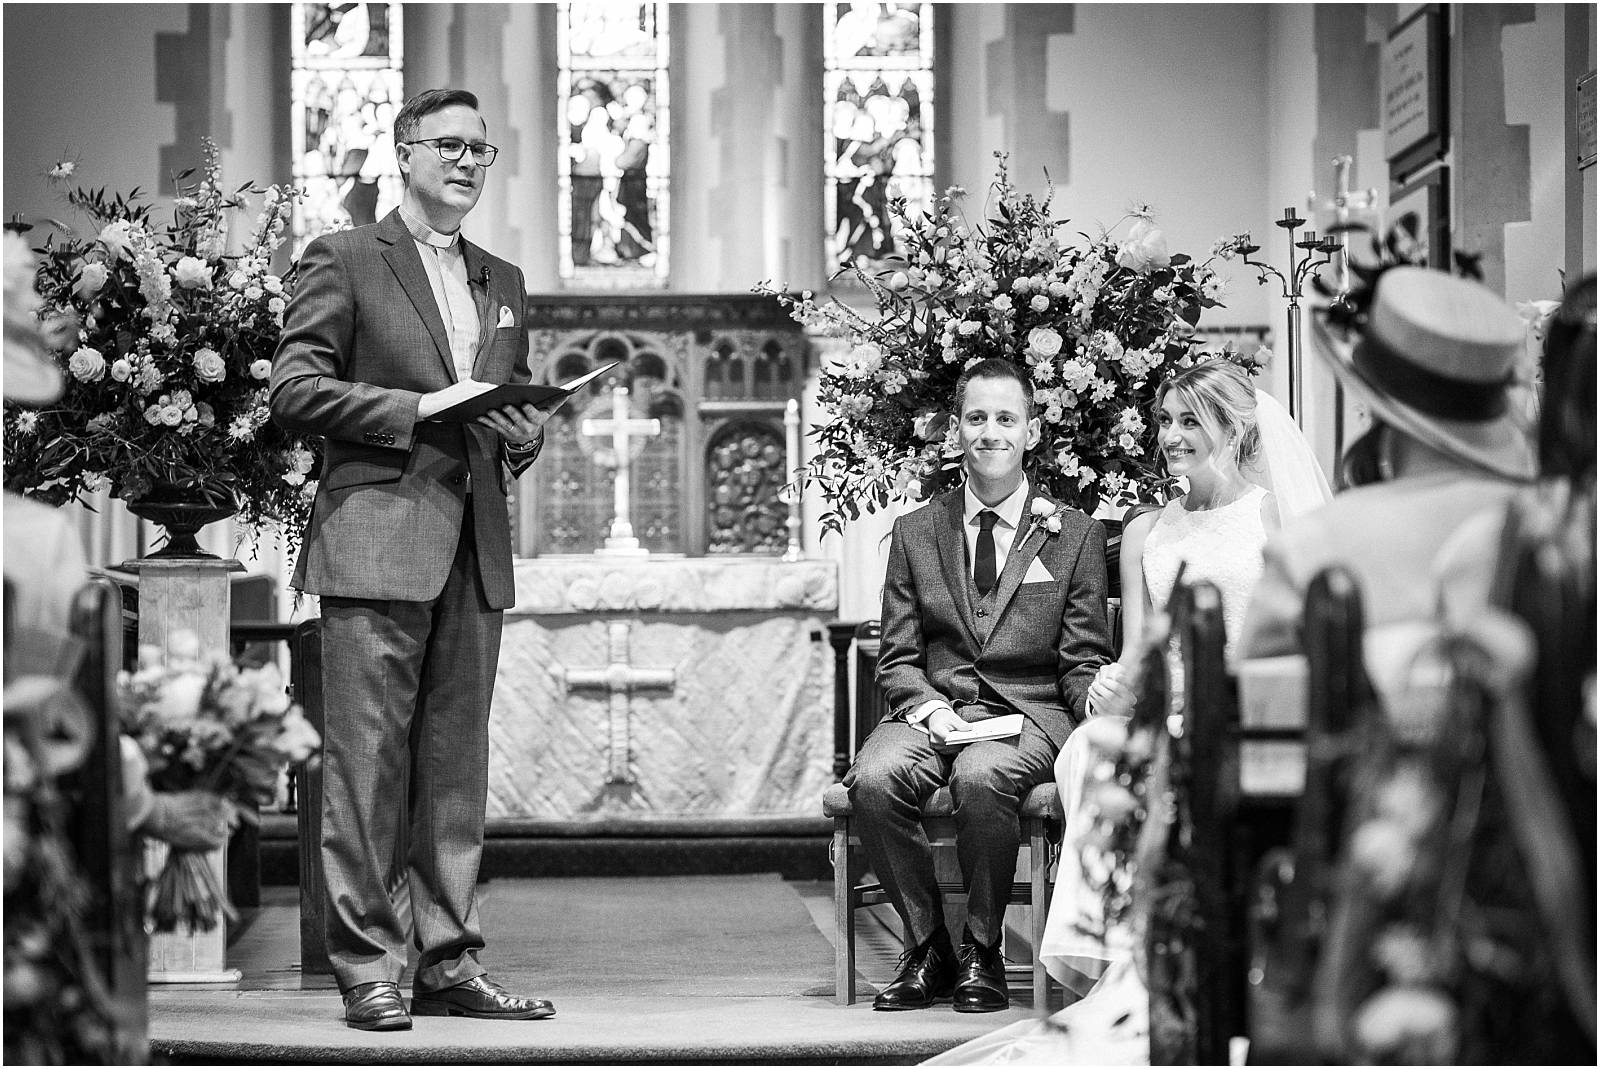 black and white wedding service photograph